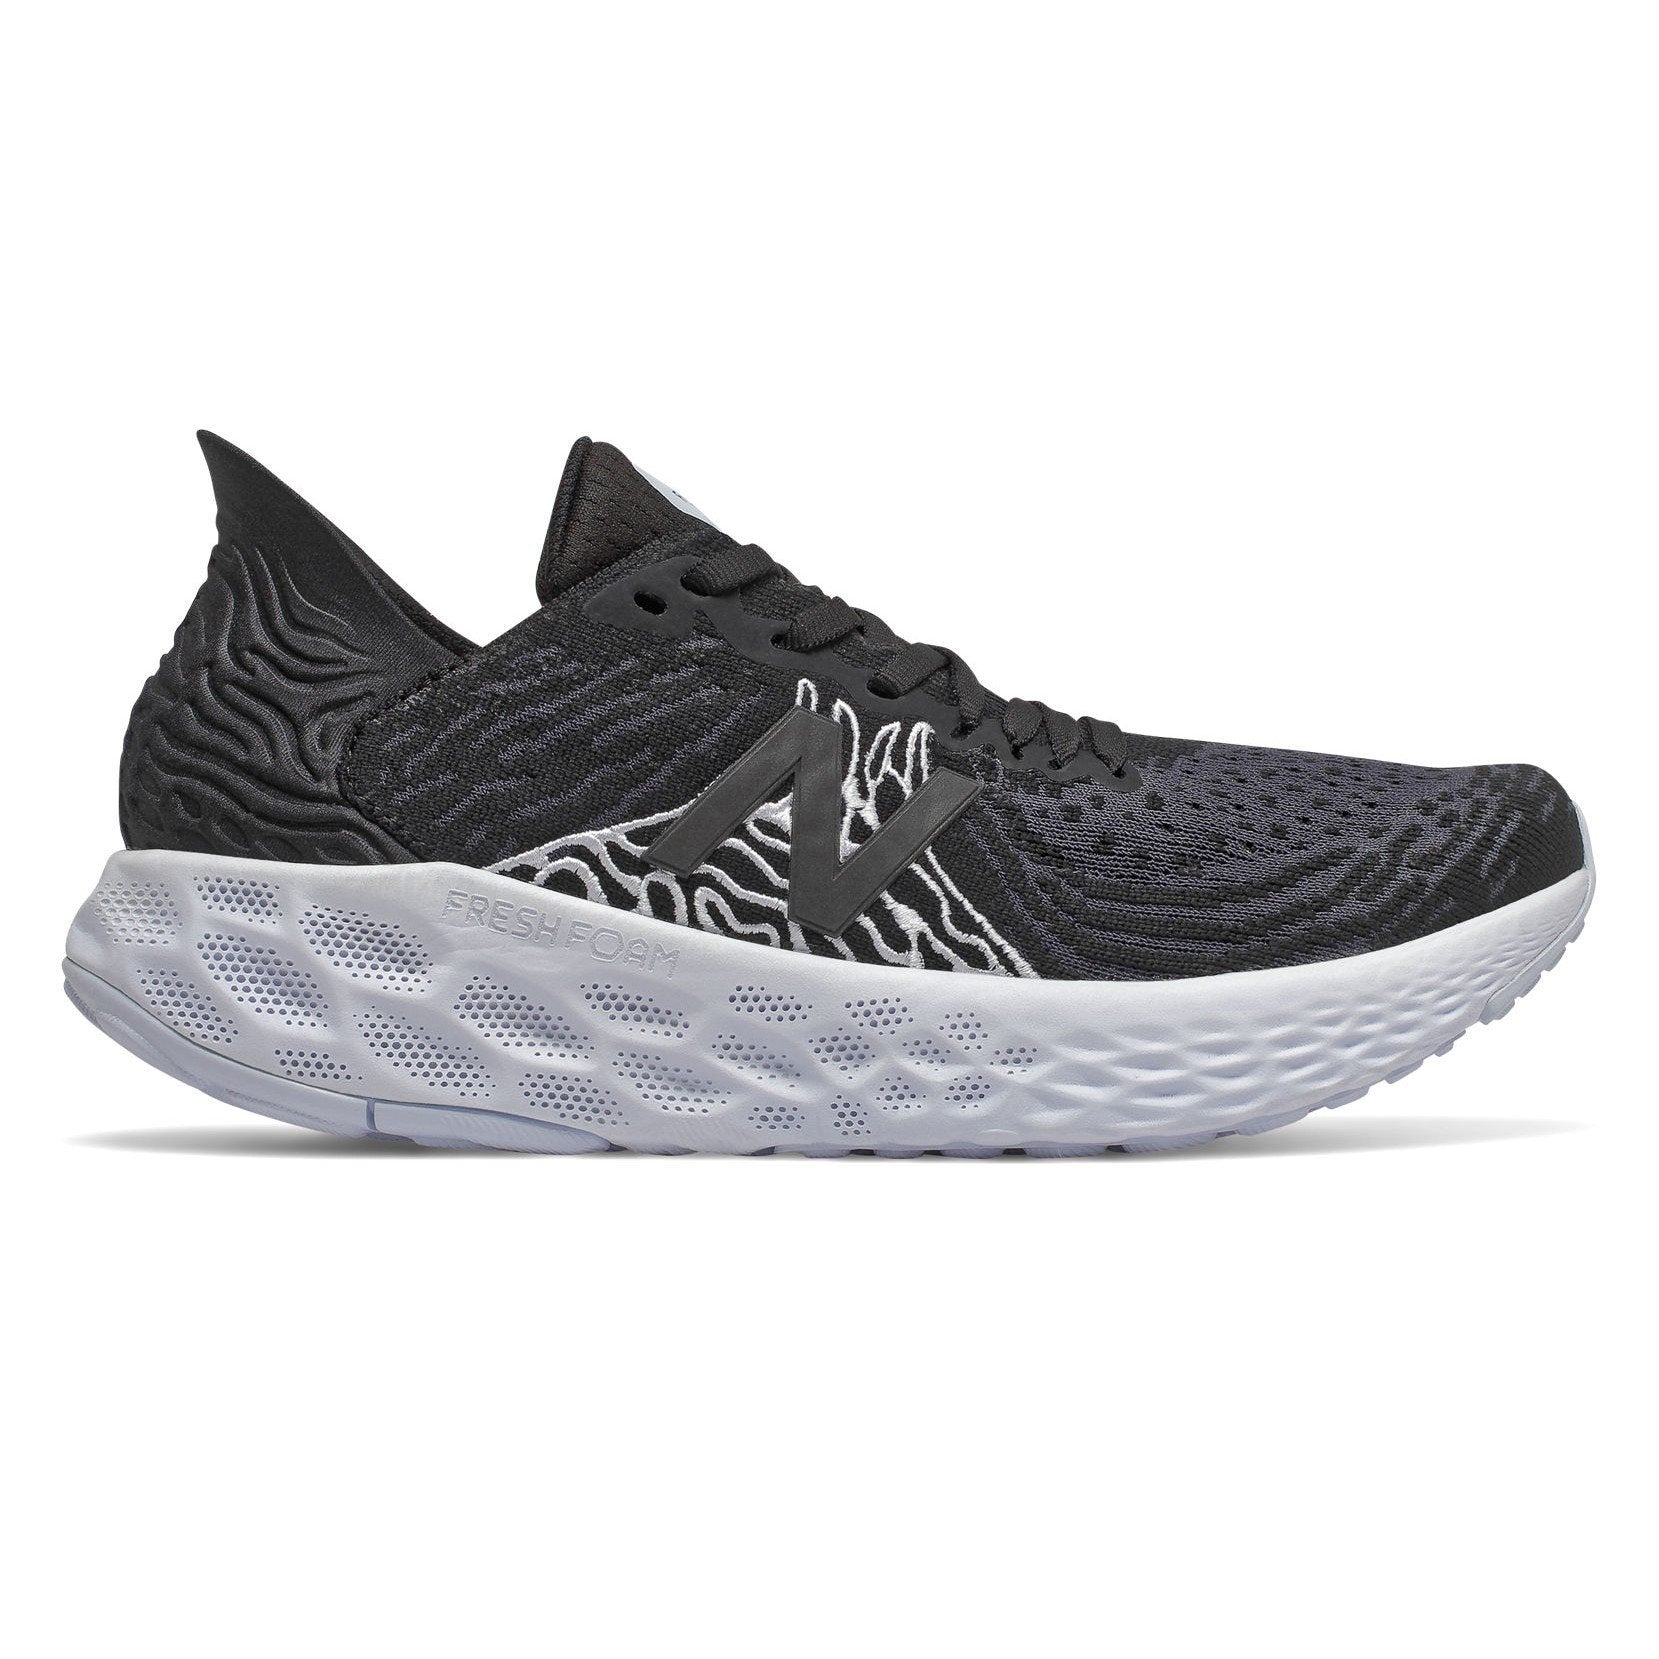 New Balance Women's Fresh Foam 1080v10 - BlackToe Running Inc. - Toronto Running Specialty Store